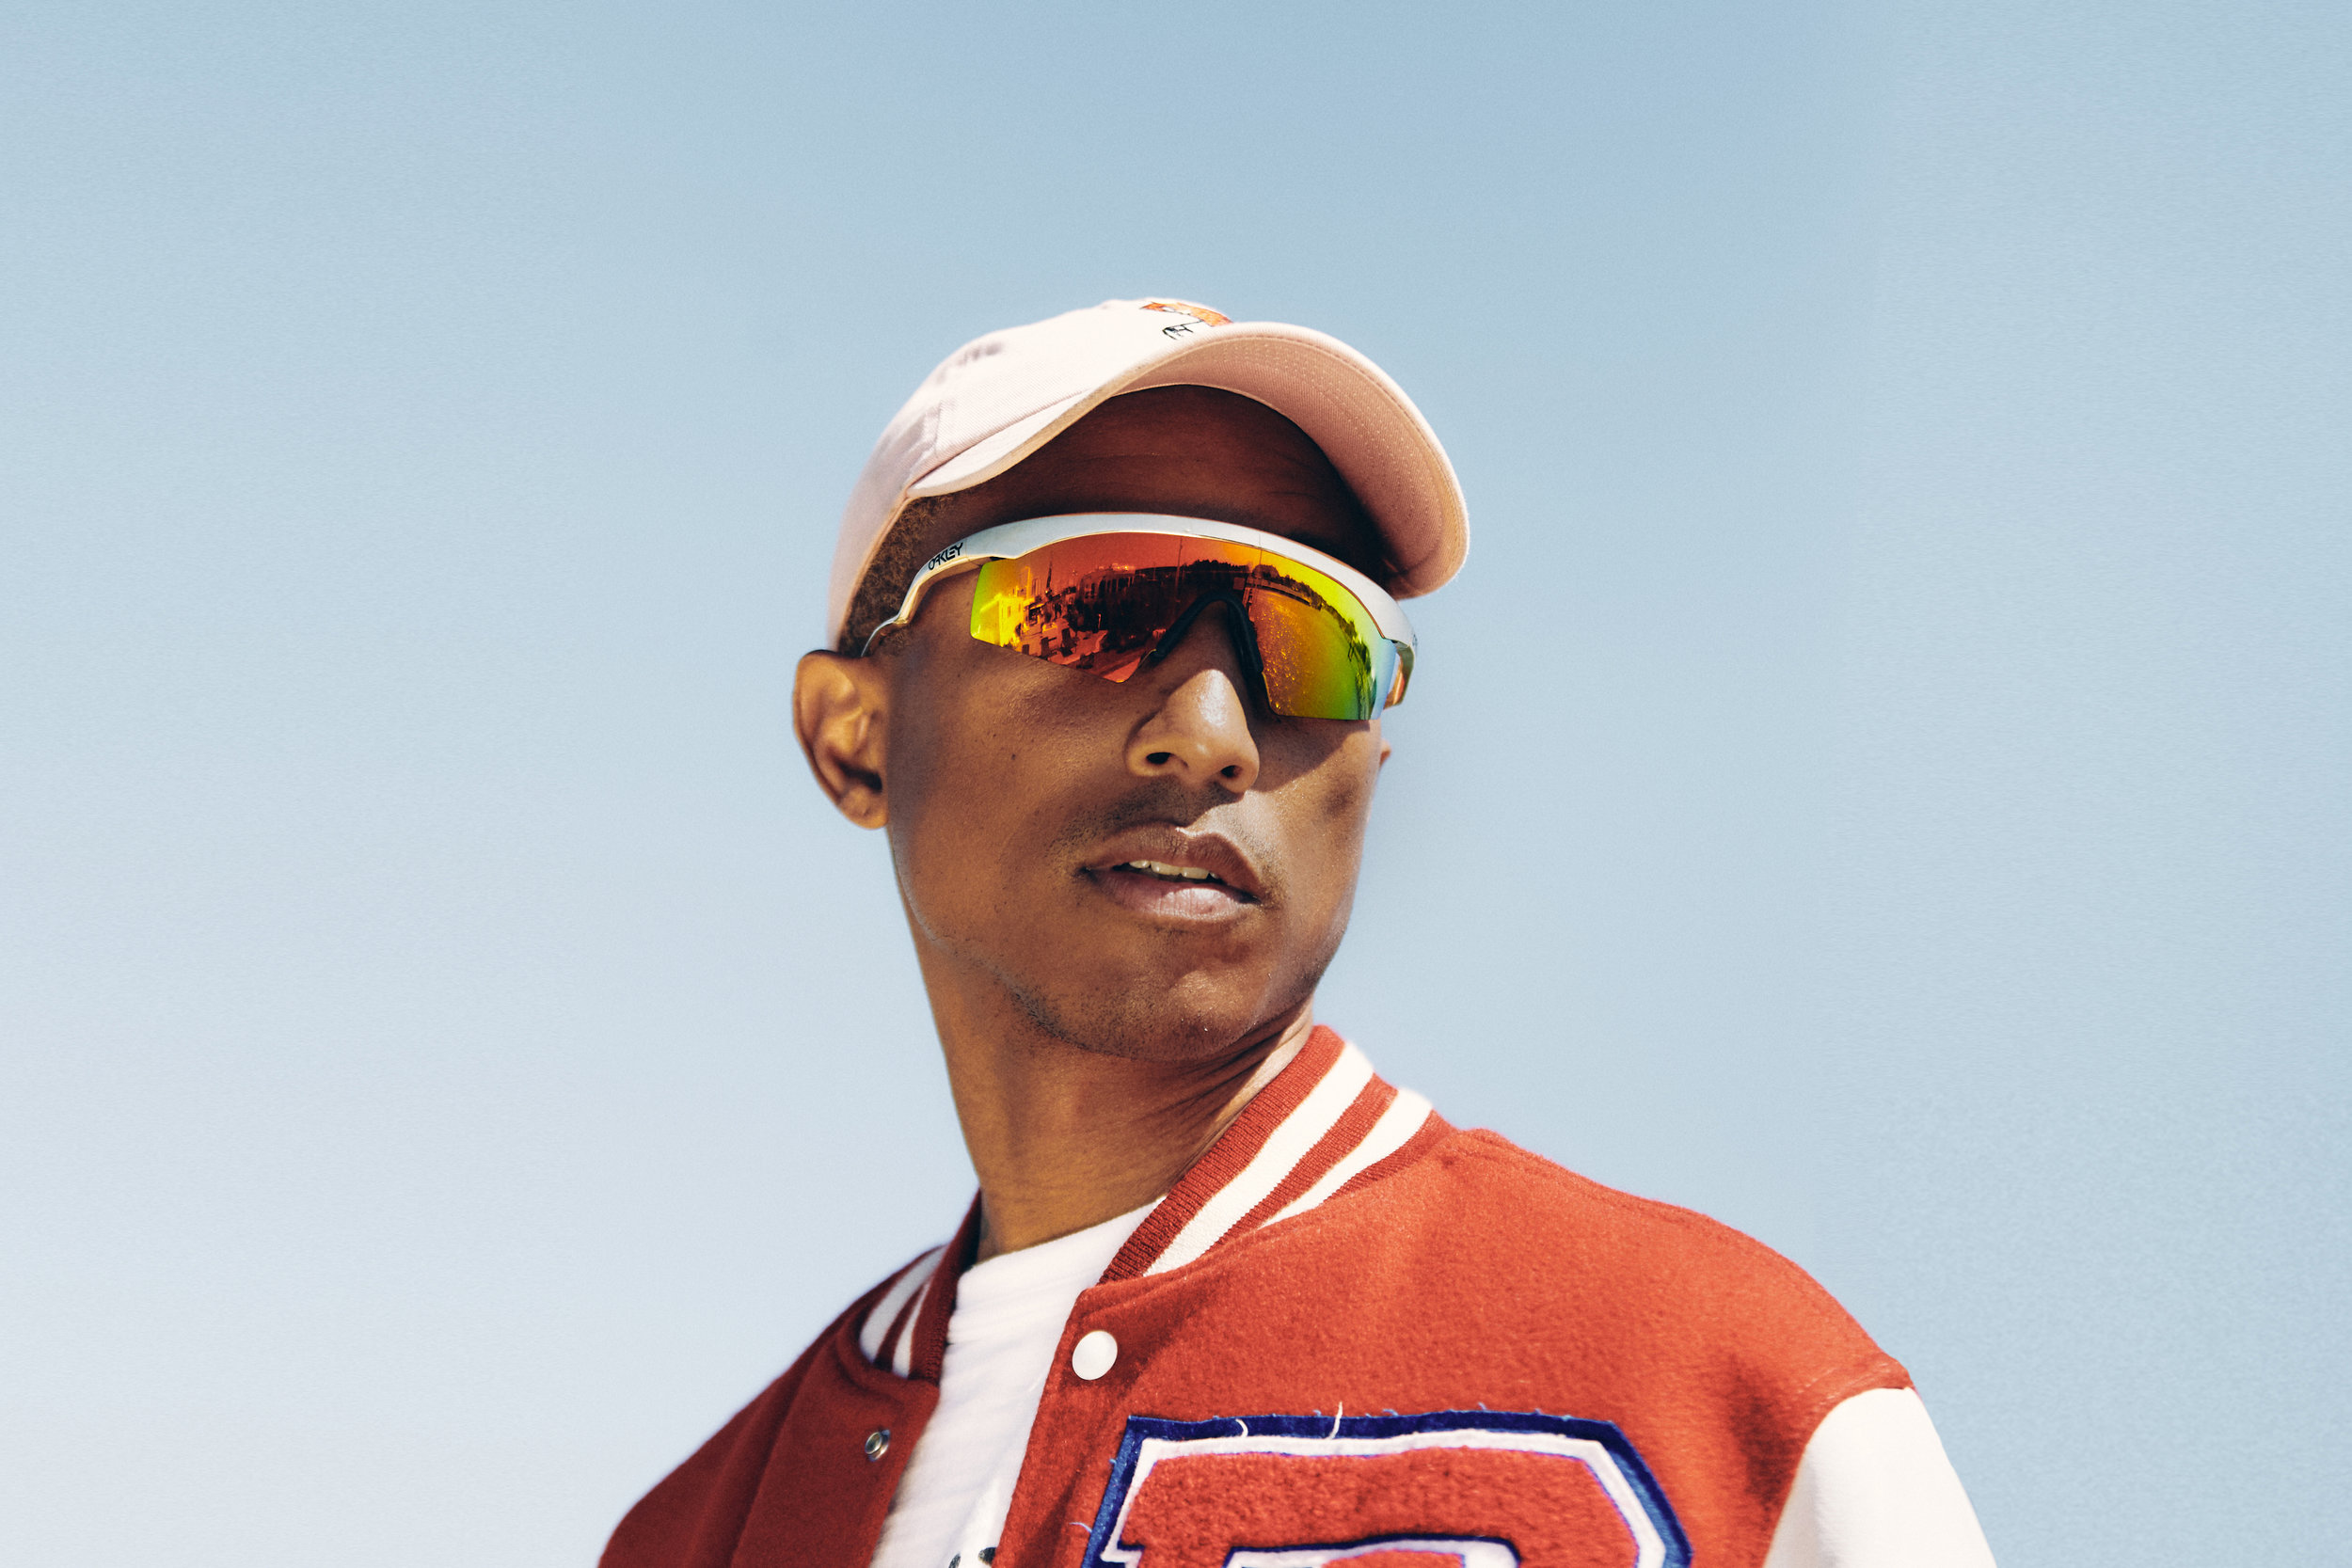 Pharrell's Something in the Water for GQ